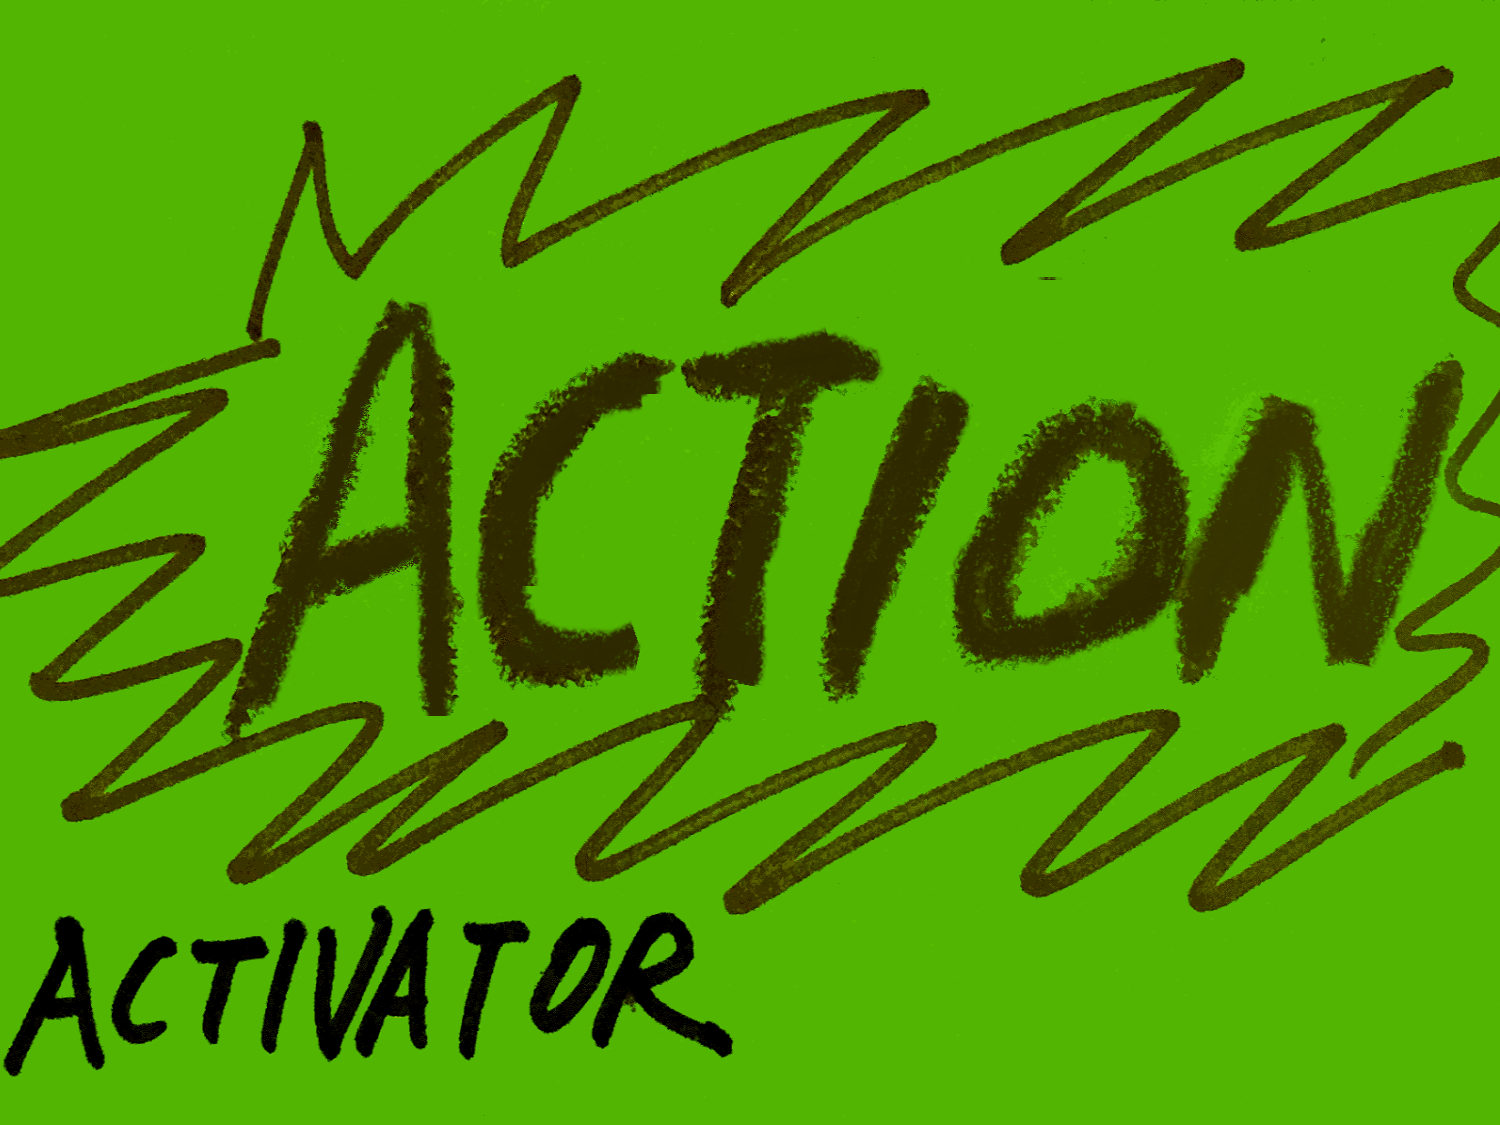 Activator StrengthsFinder Singapore Action Now